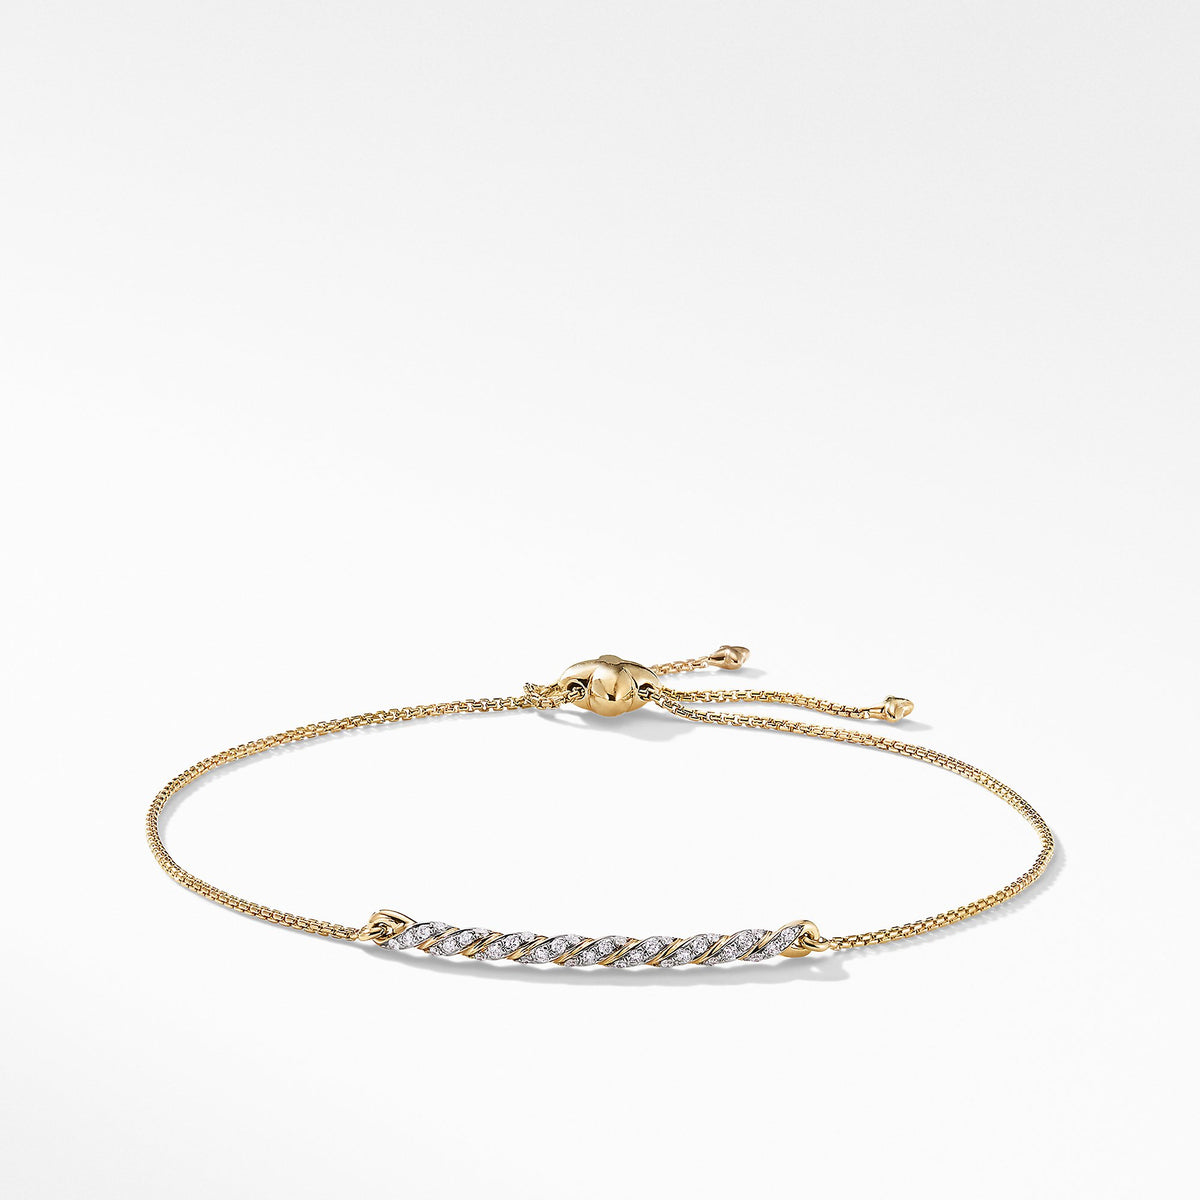 Pav馬ex Station Bracelet with Diamonds in 18K Gold